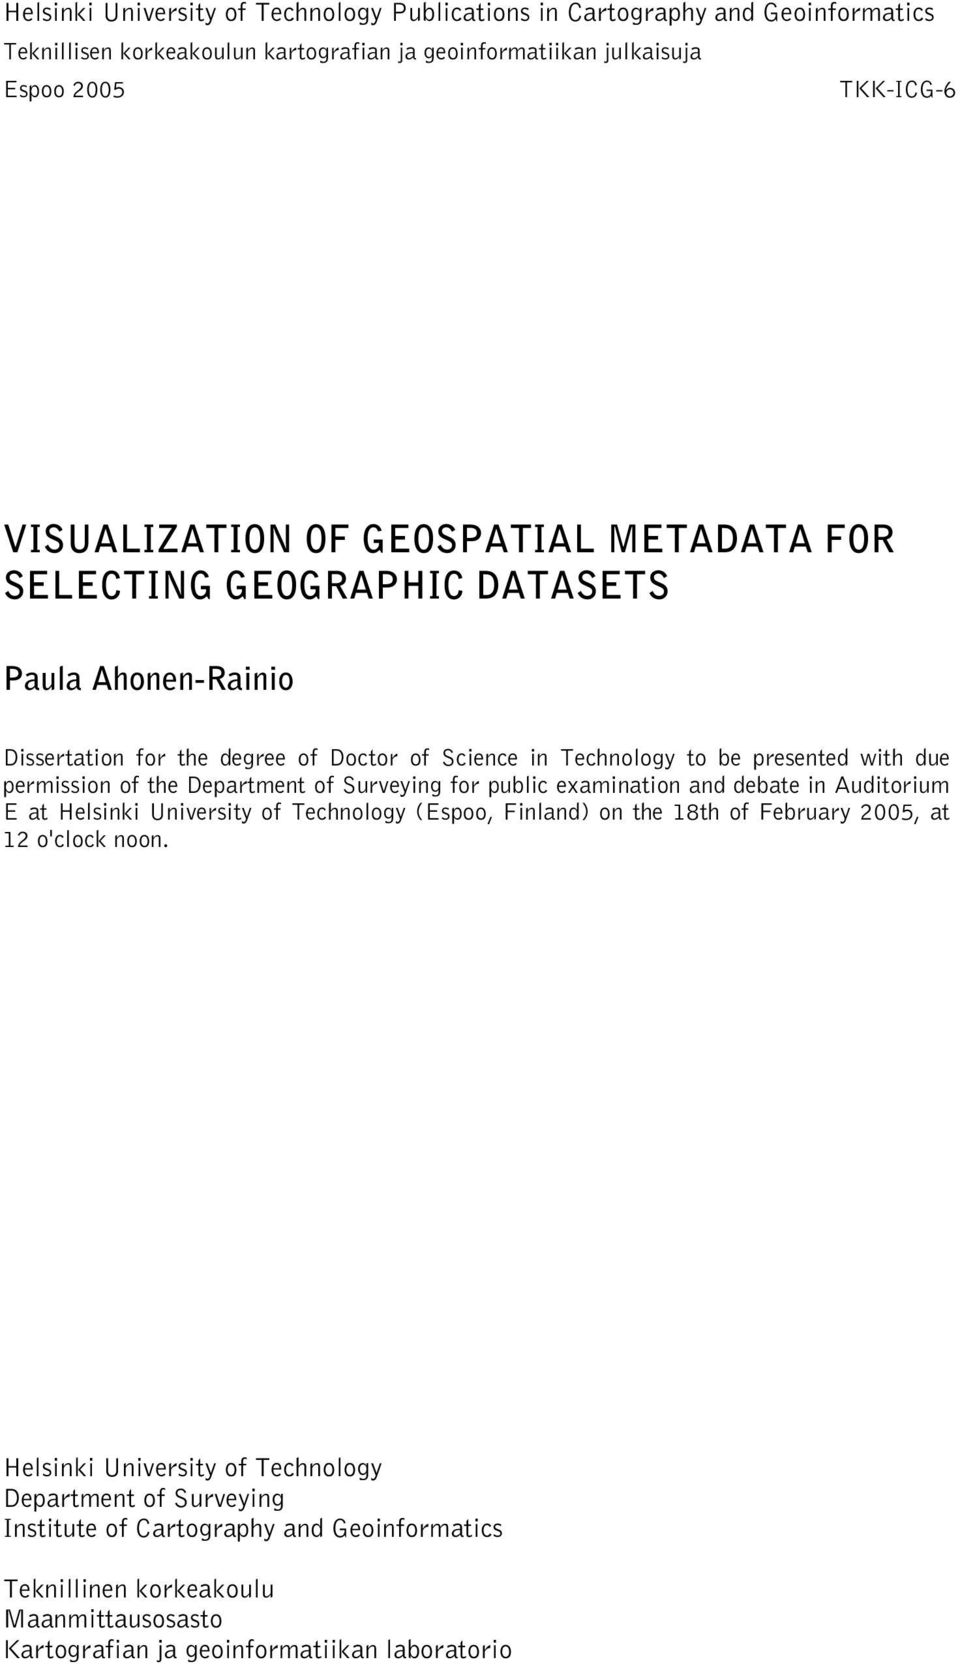 permission of the Department of Surveying for public examination and debate in Auditorium E at Helsinki University of Technology (Espoo, Finland) on the 18th of February 2005, at 12